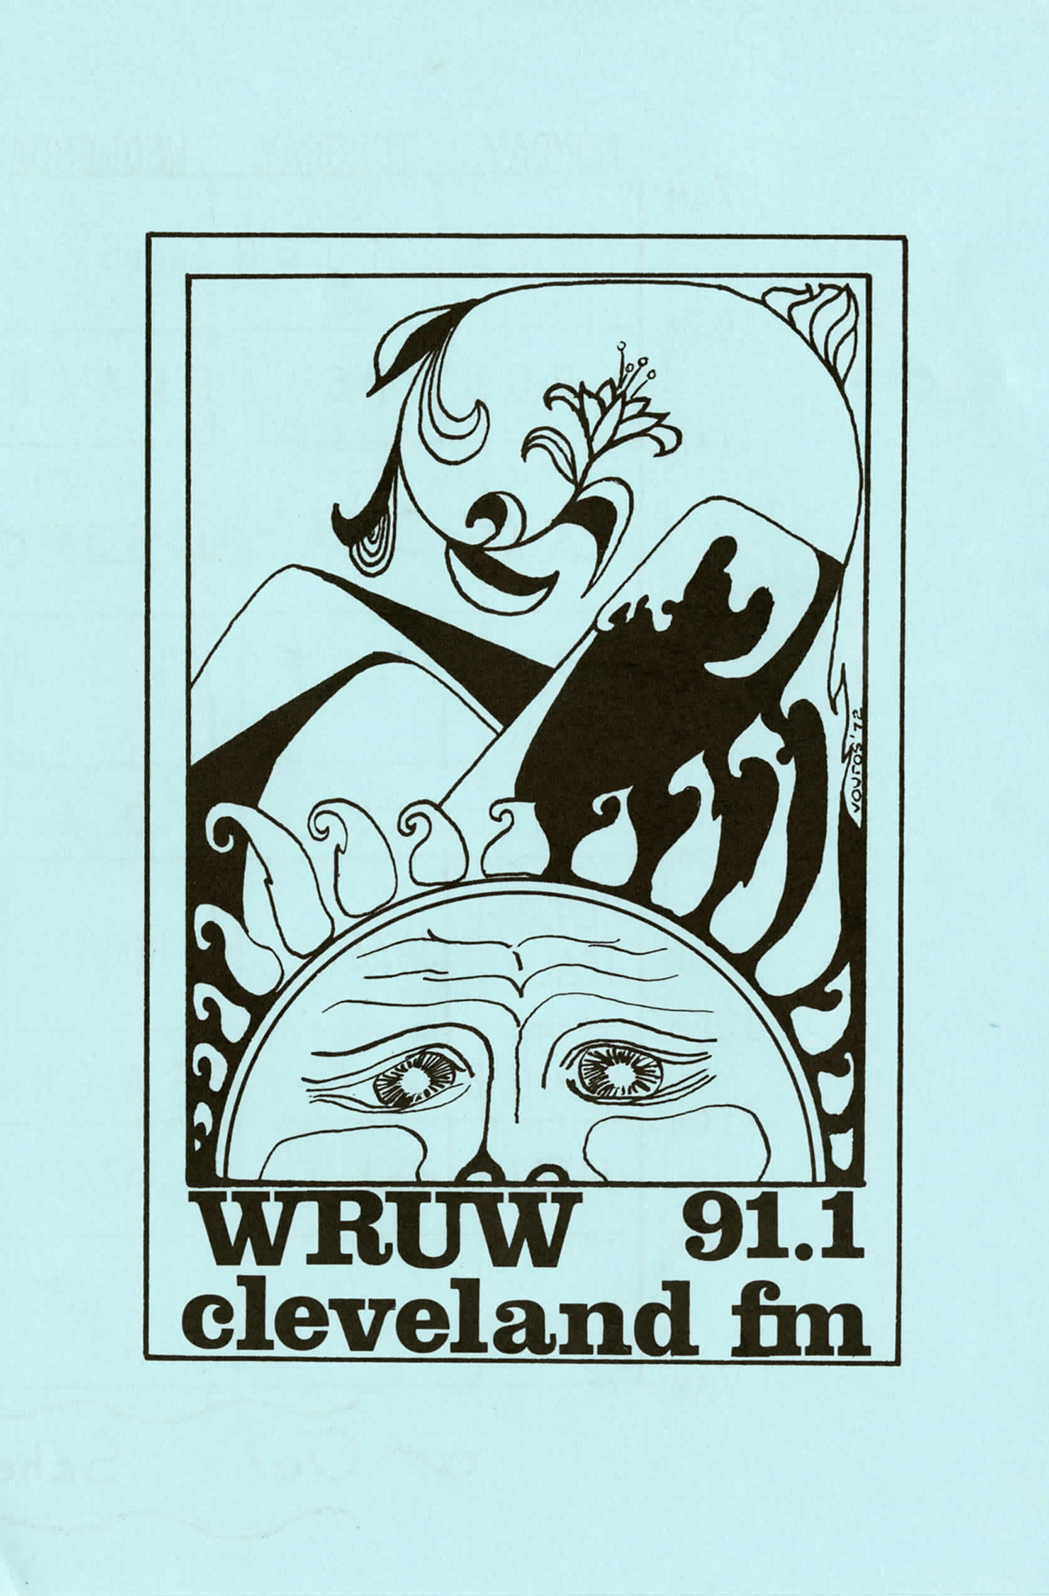 A blue and black paper cover of a WRUW Programming Guide with an illustration of the sun from 1972.